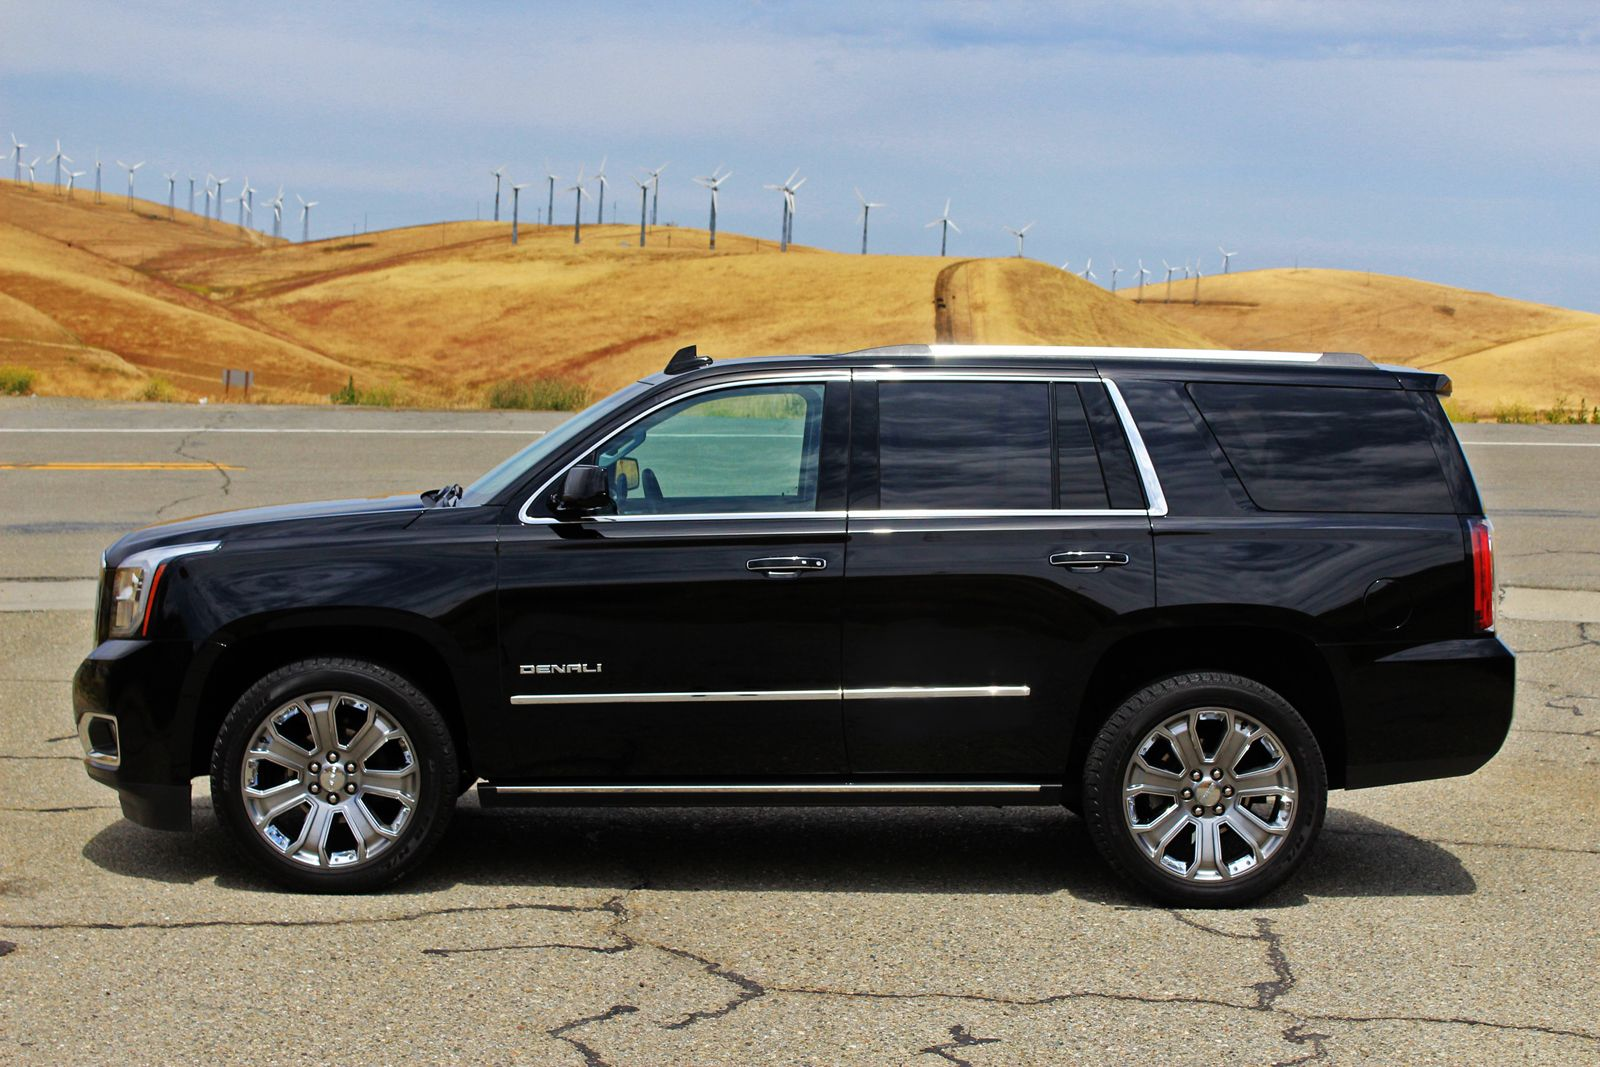 Customized gmc yukon denali exclusive motoring miami fl exclusive motoring miami boise whips pinterest yukon denali dream cars and cars